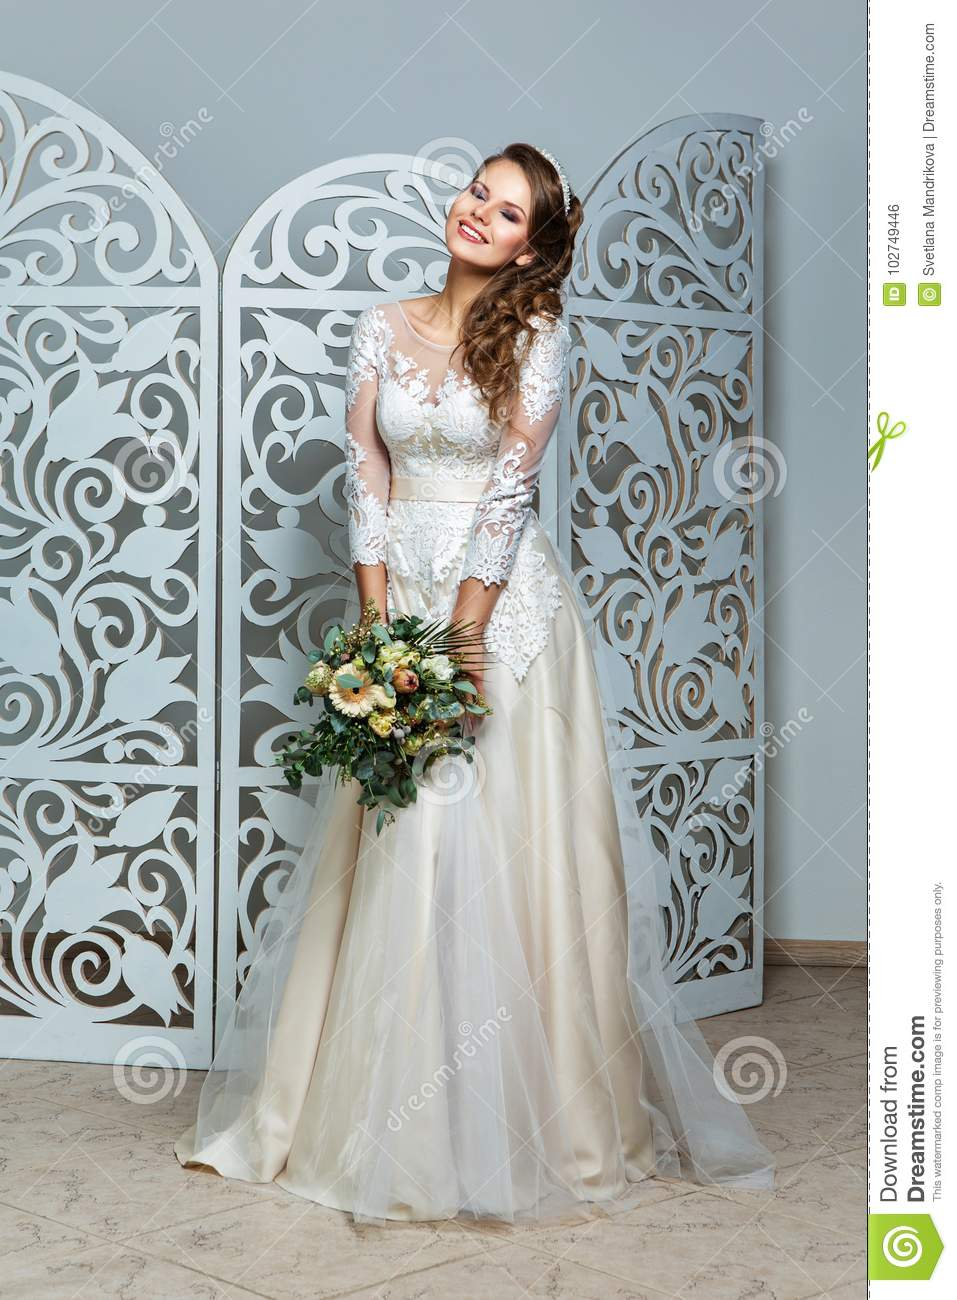 Beautiful Girl In Wedding Gown Stock Photo Image Of Bouquet